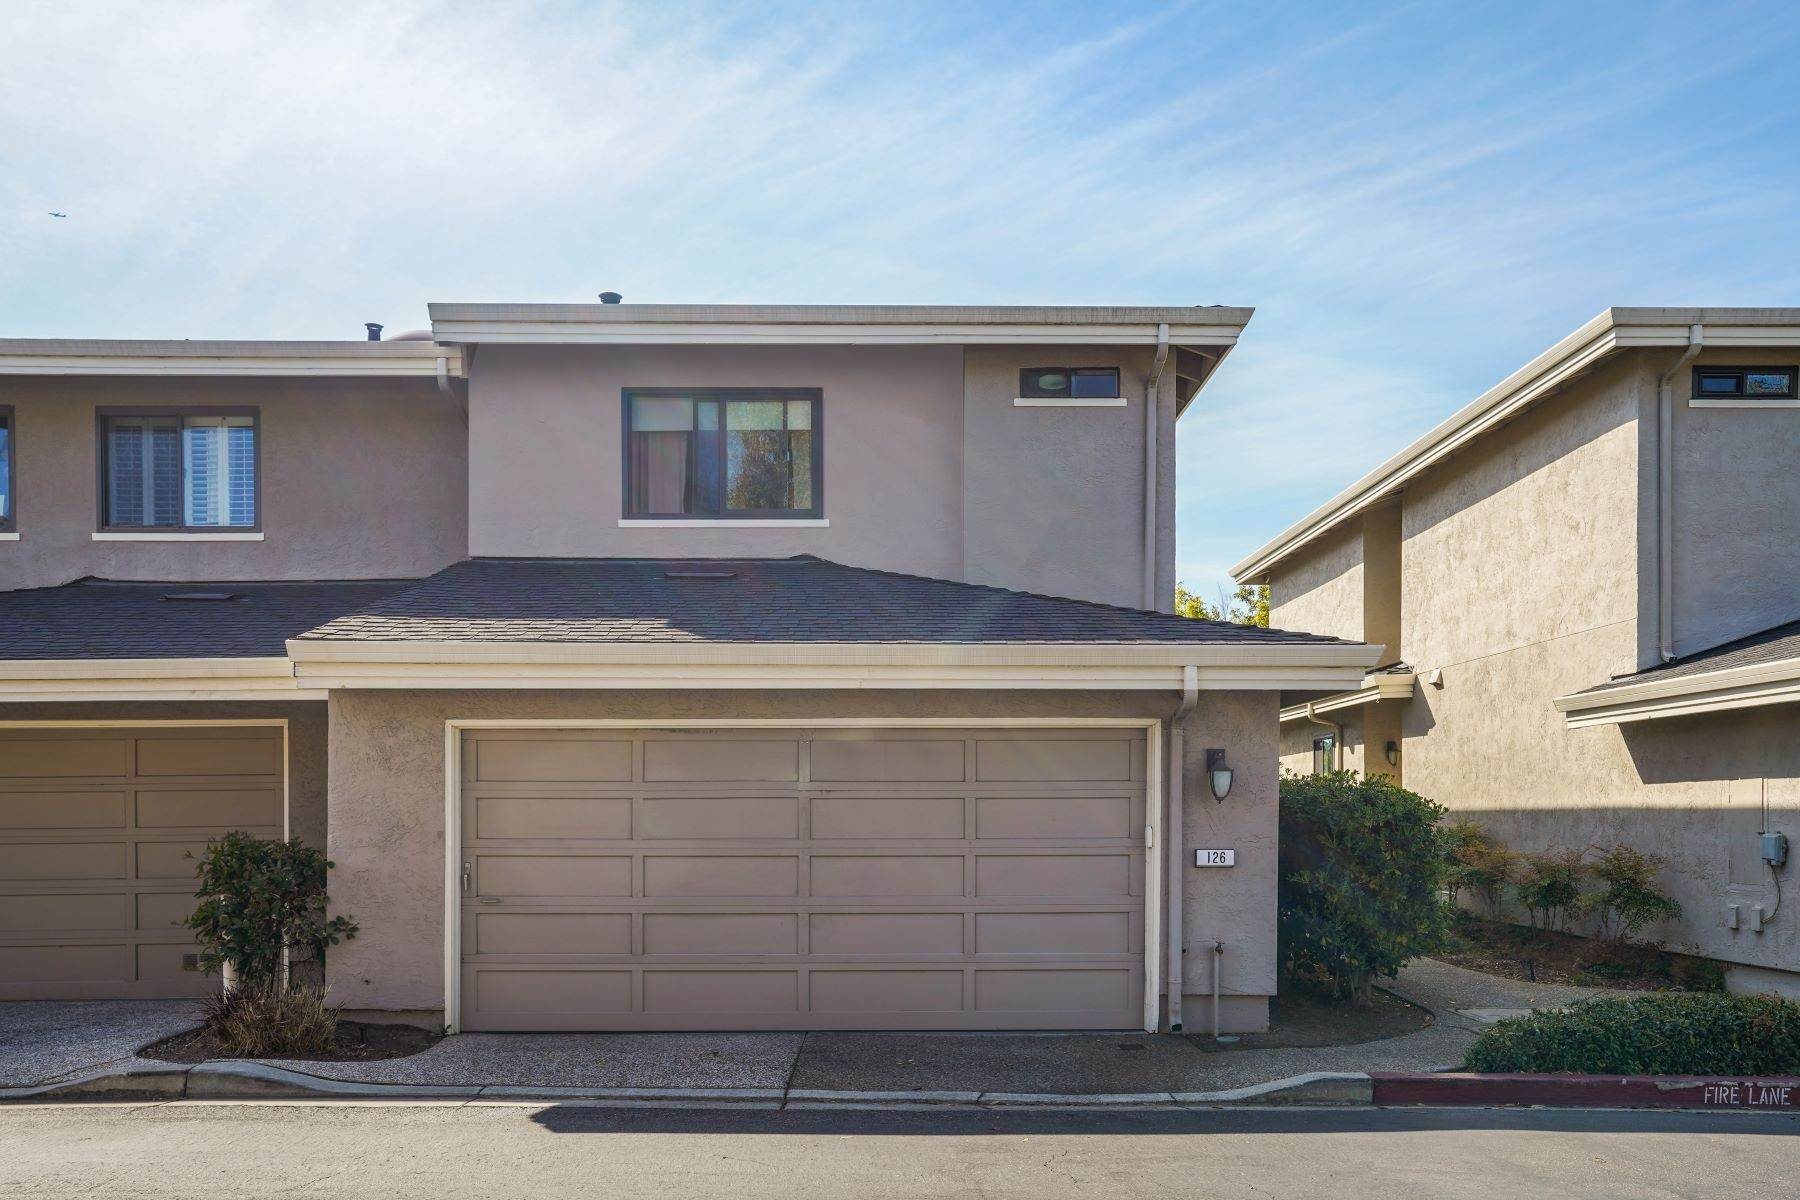 27. townhouses for Sale at Contemporary Townhome with Excellent Mid-Peninsula Location 126 Albacore Lane Foster City, California 94404 United States